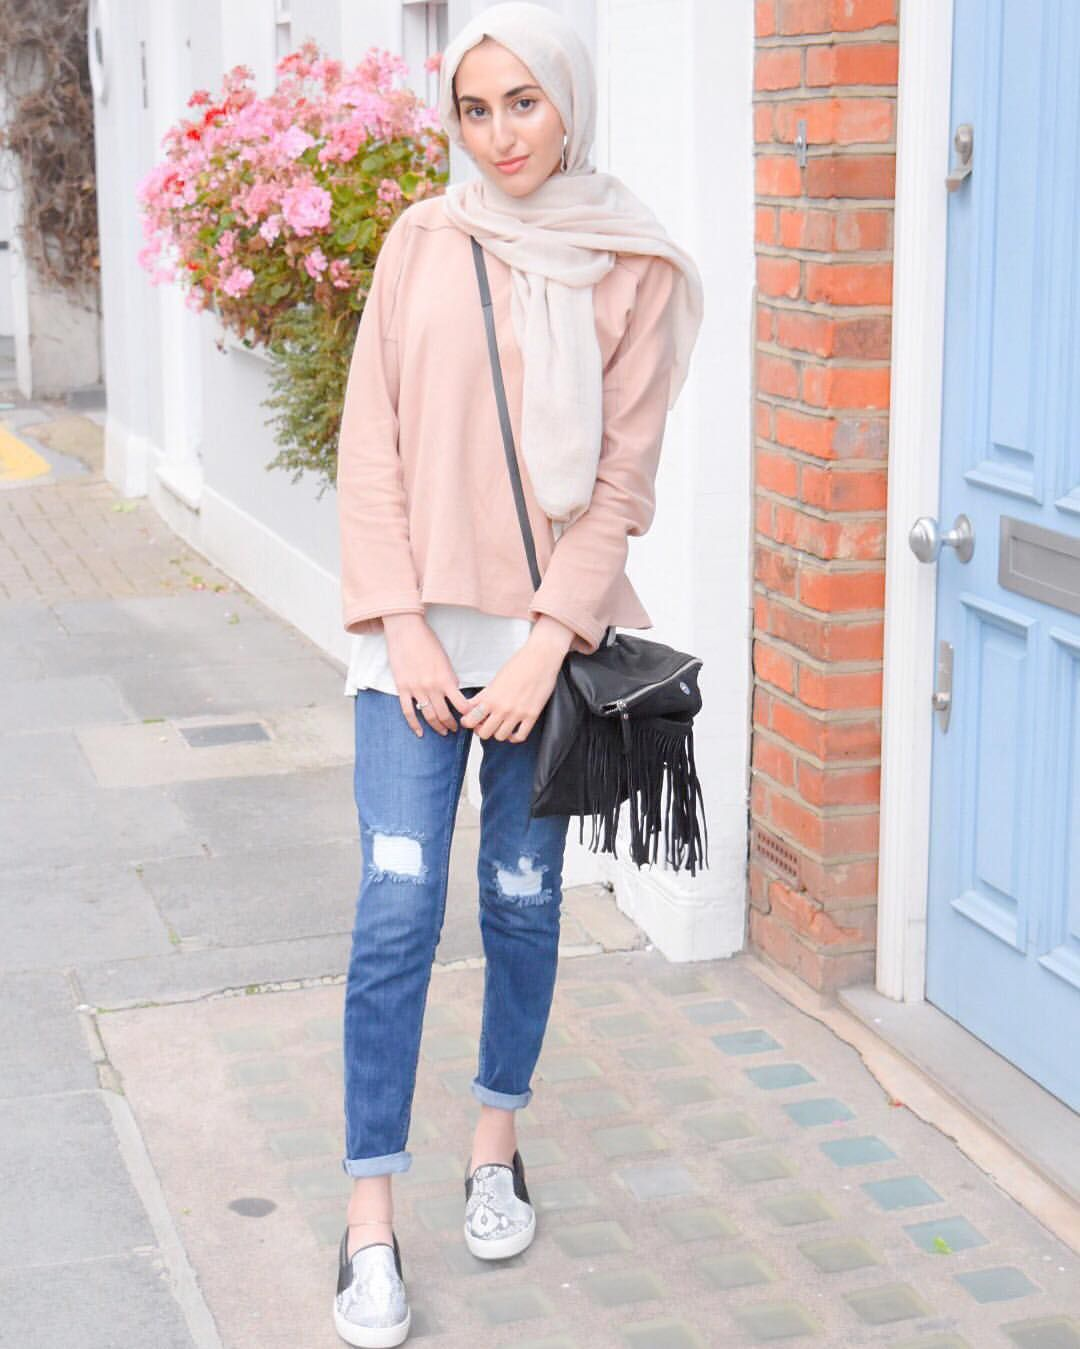 London street style. | My Casual hijab collection ...